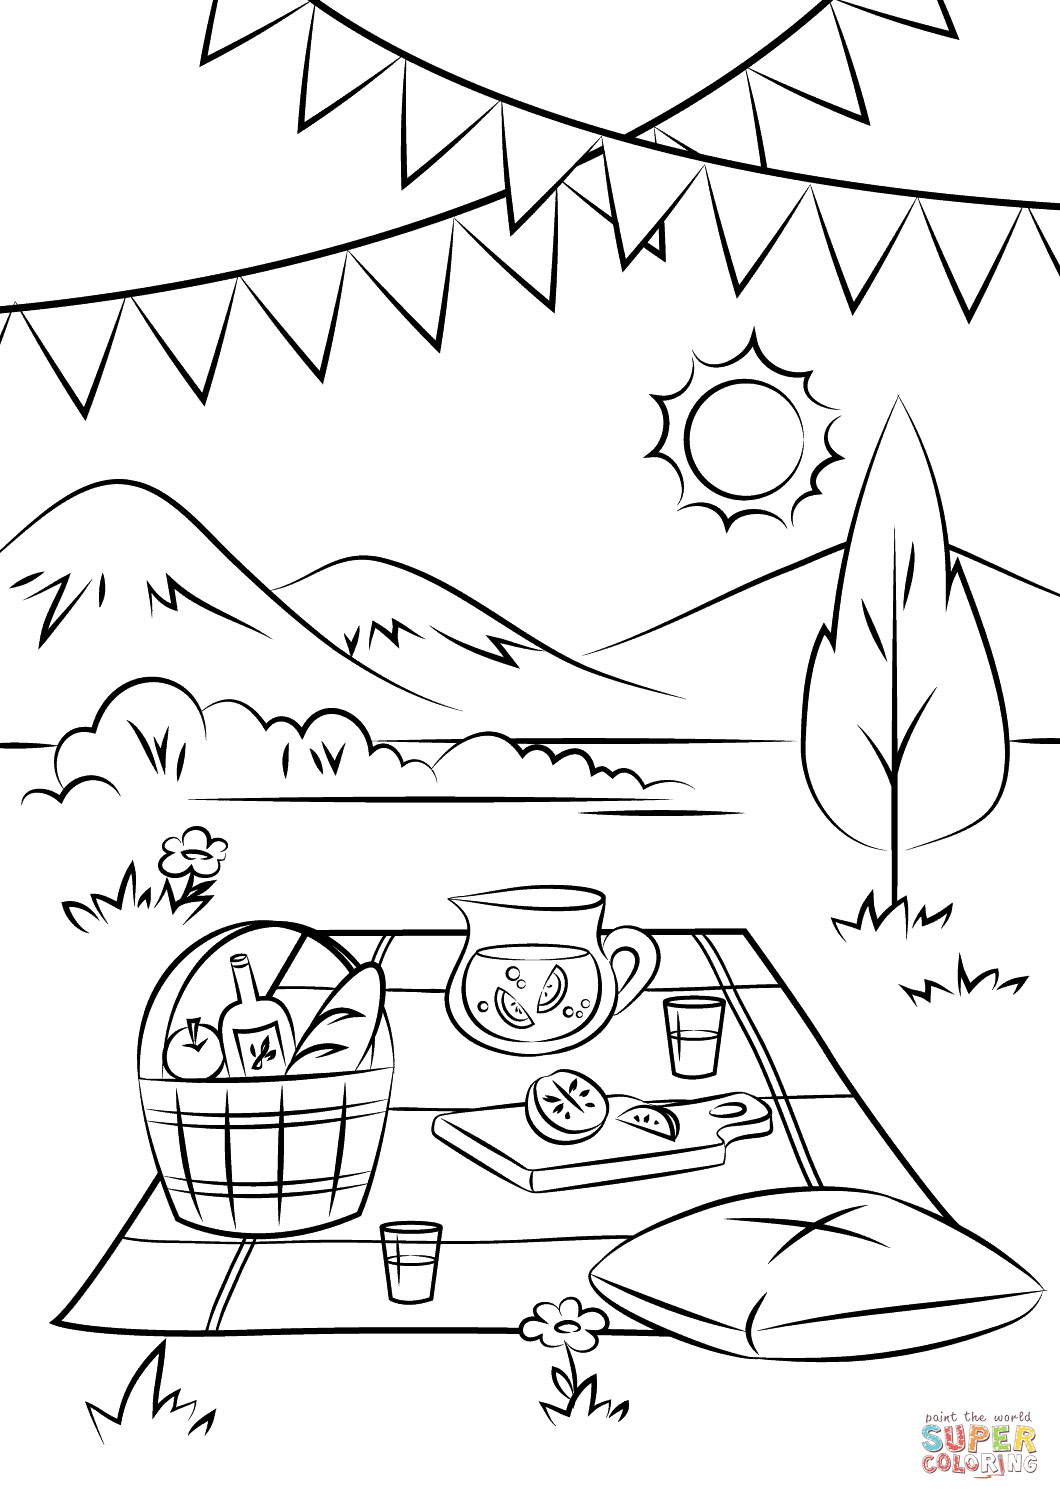 1060x1500 Drawing Of Picnic Scene How To Draw Scenery Of Family Picnic